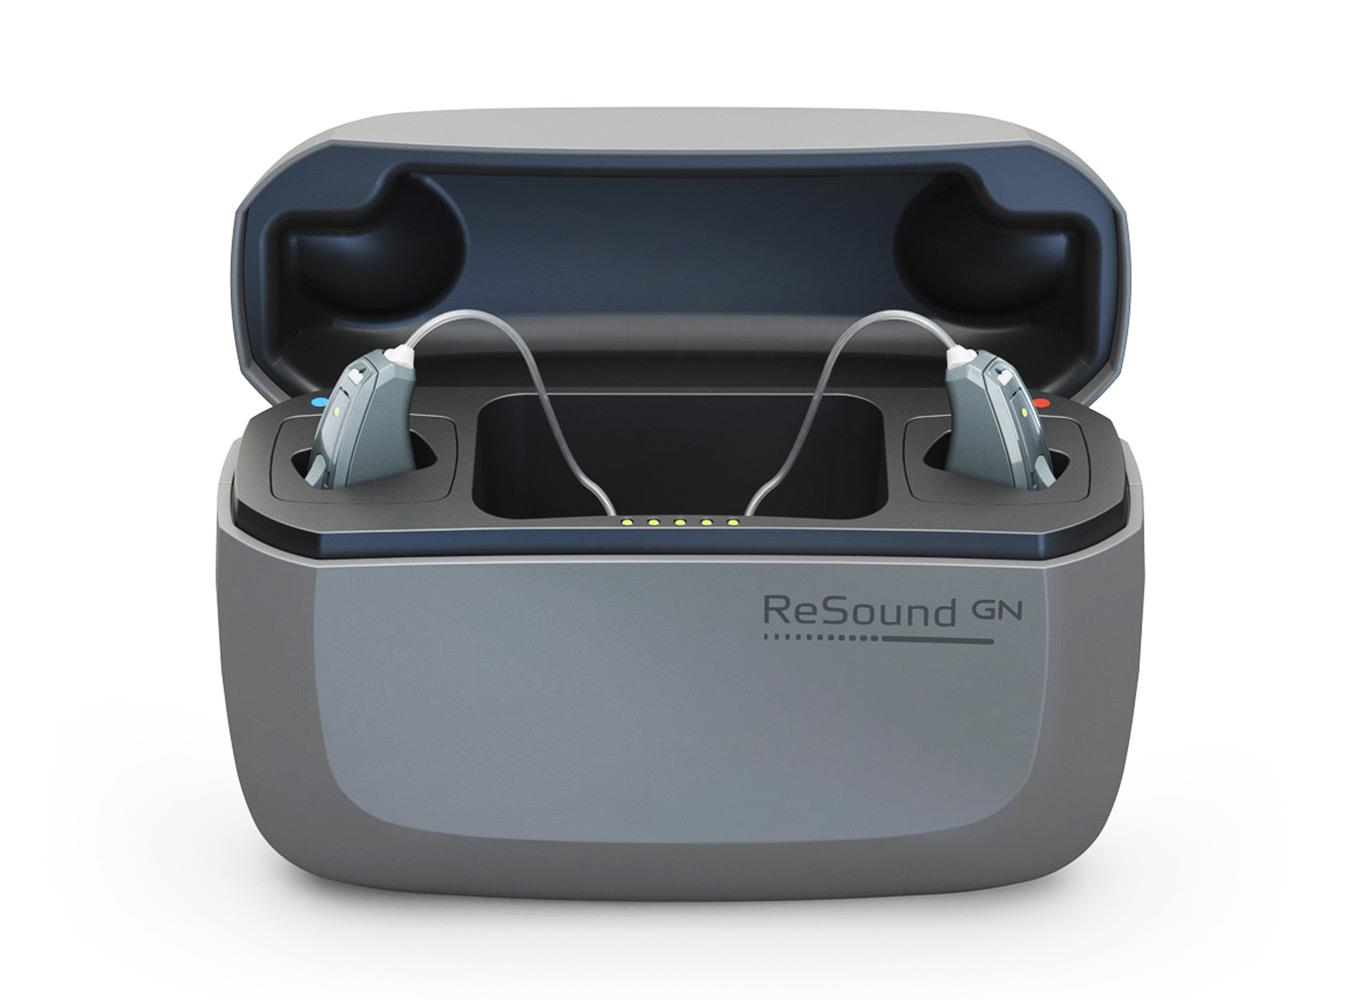 Intuitive and easy to use ReSound LiNX Quattro hearing aid in a charger